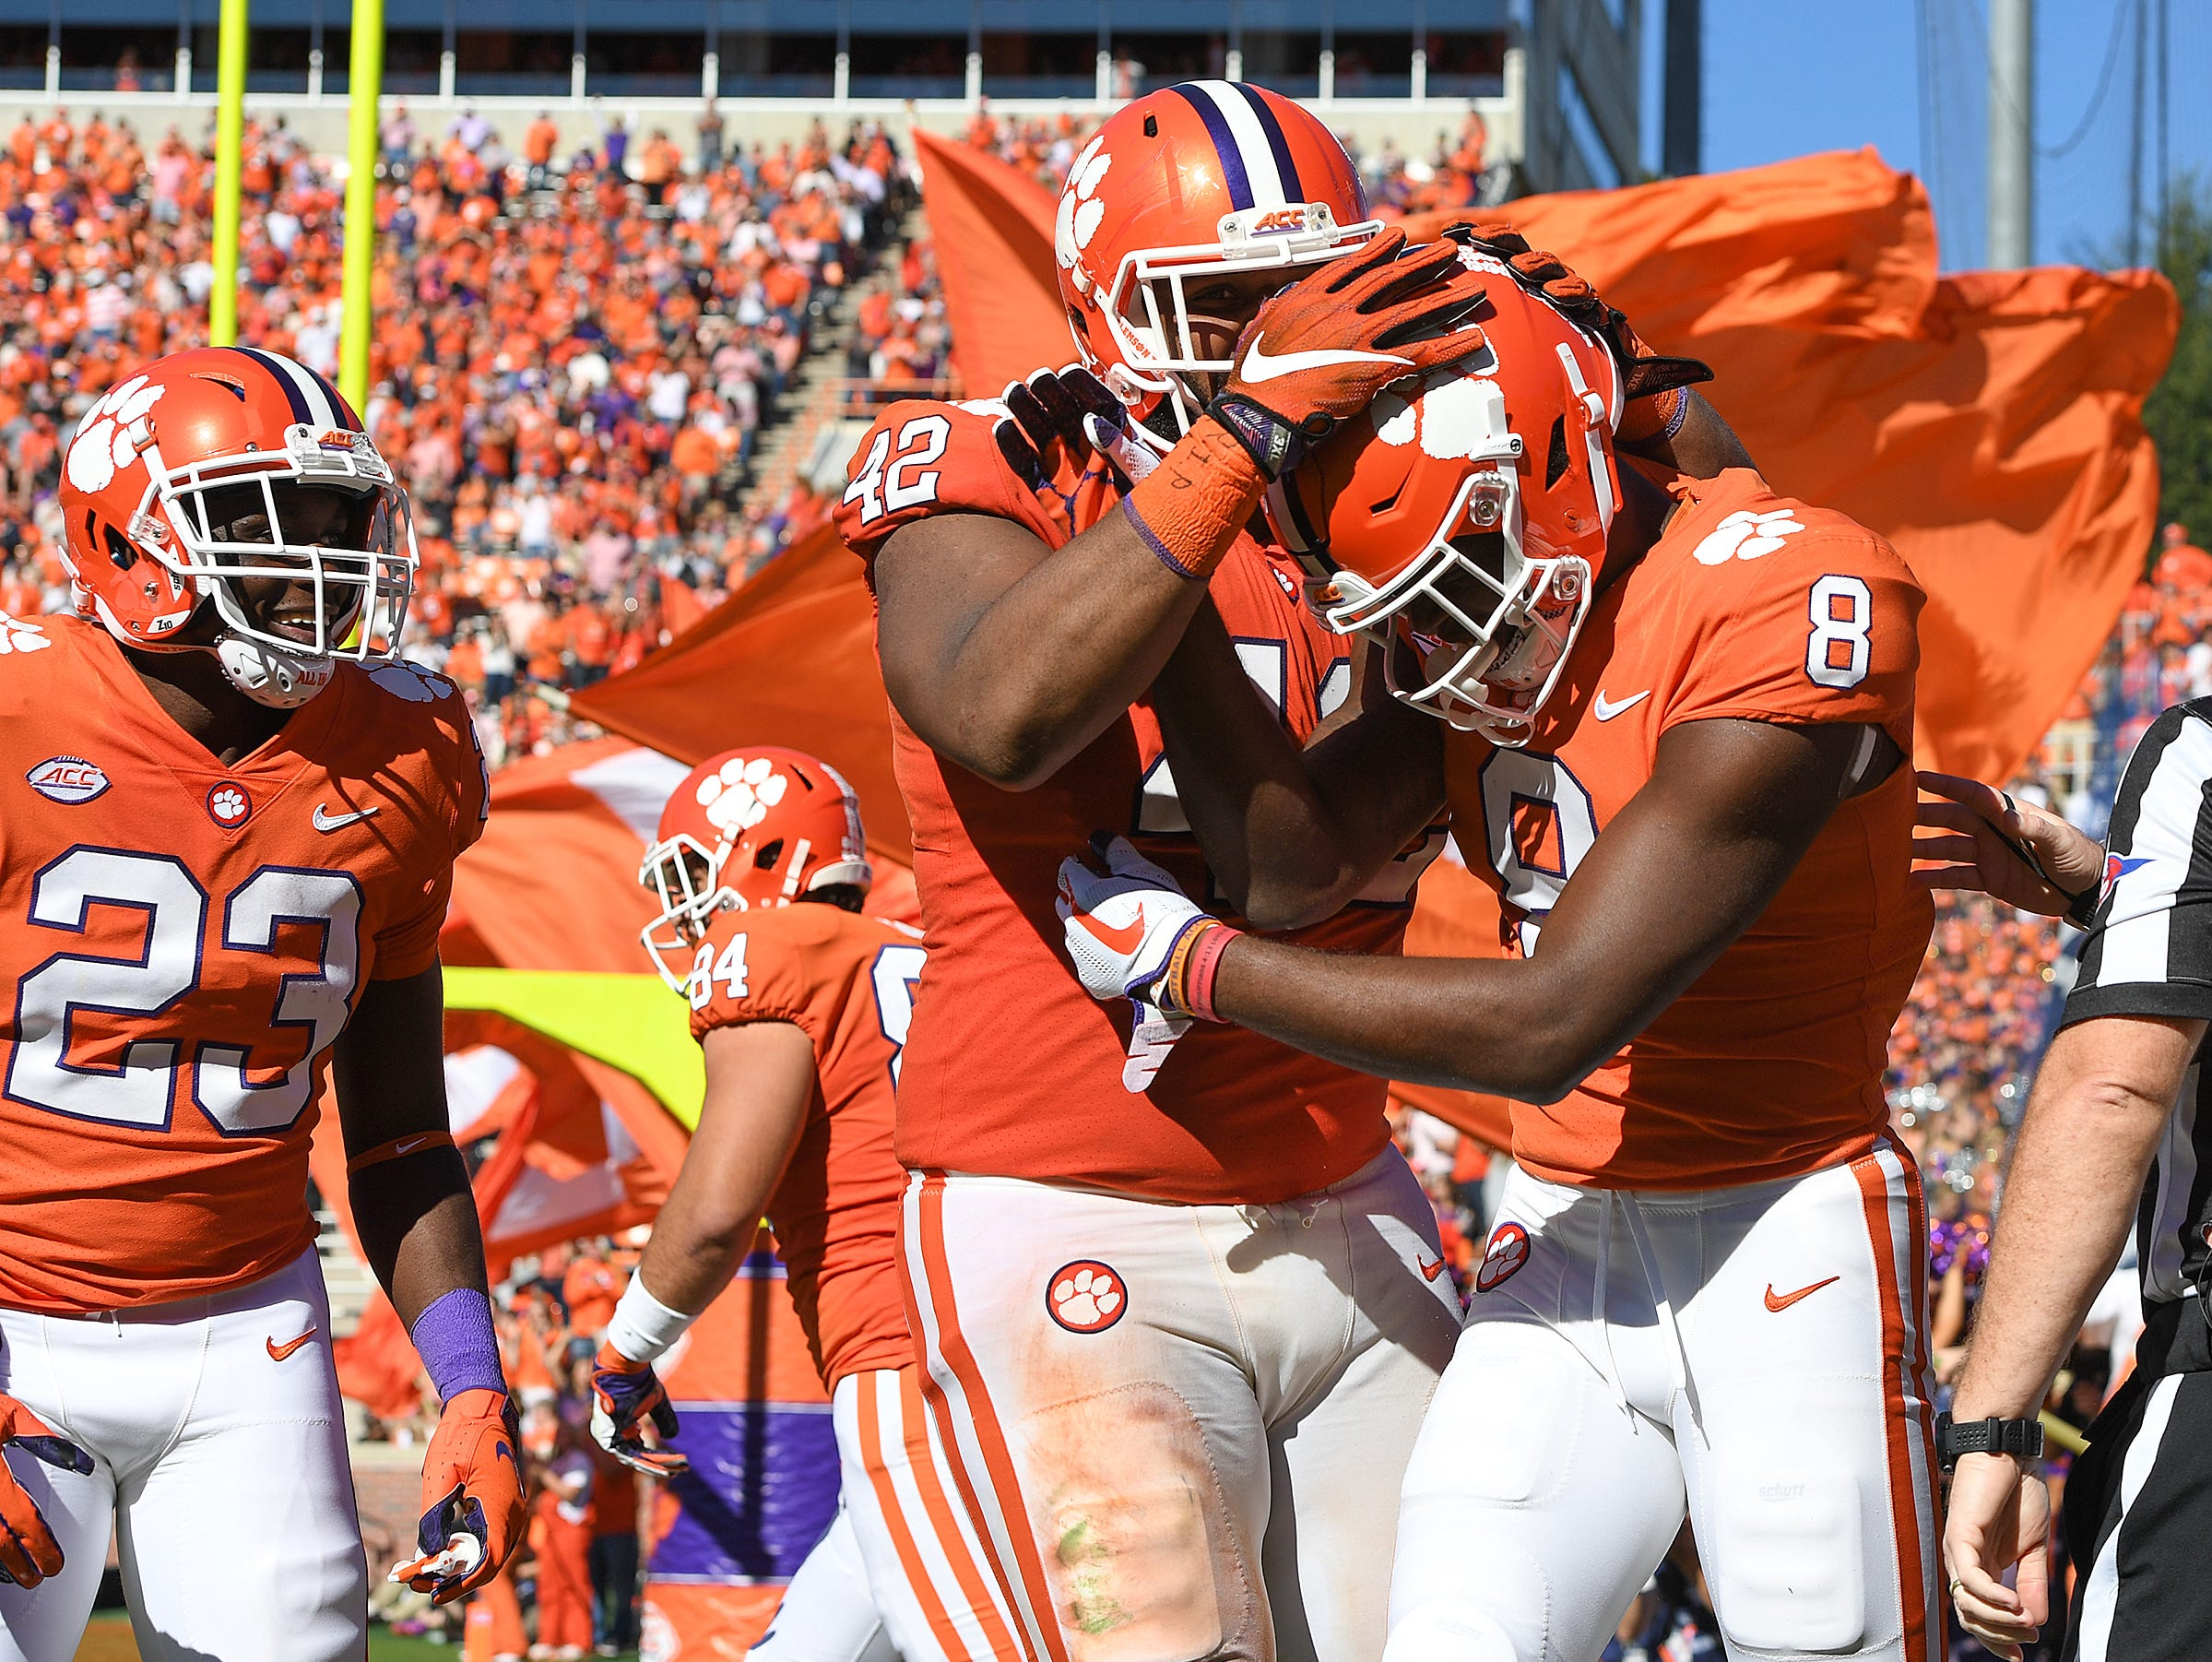 Clemson wide receiver Justyn Ross (8) celebrates with defensive lineman Christian Wilkins (42) after scoring against Louisville during the 3rd quarter Saturday, November 3, 2018 at Clemson's Memorial Stadium.